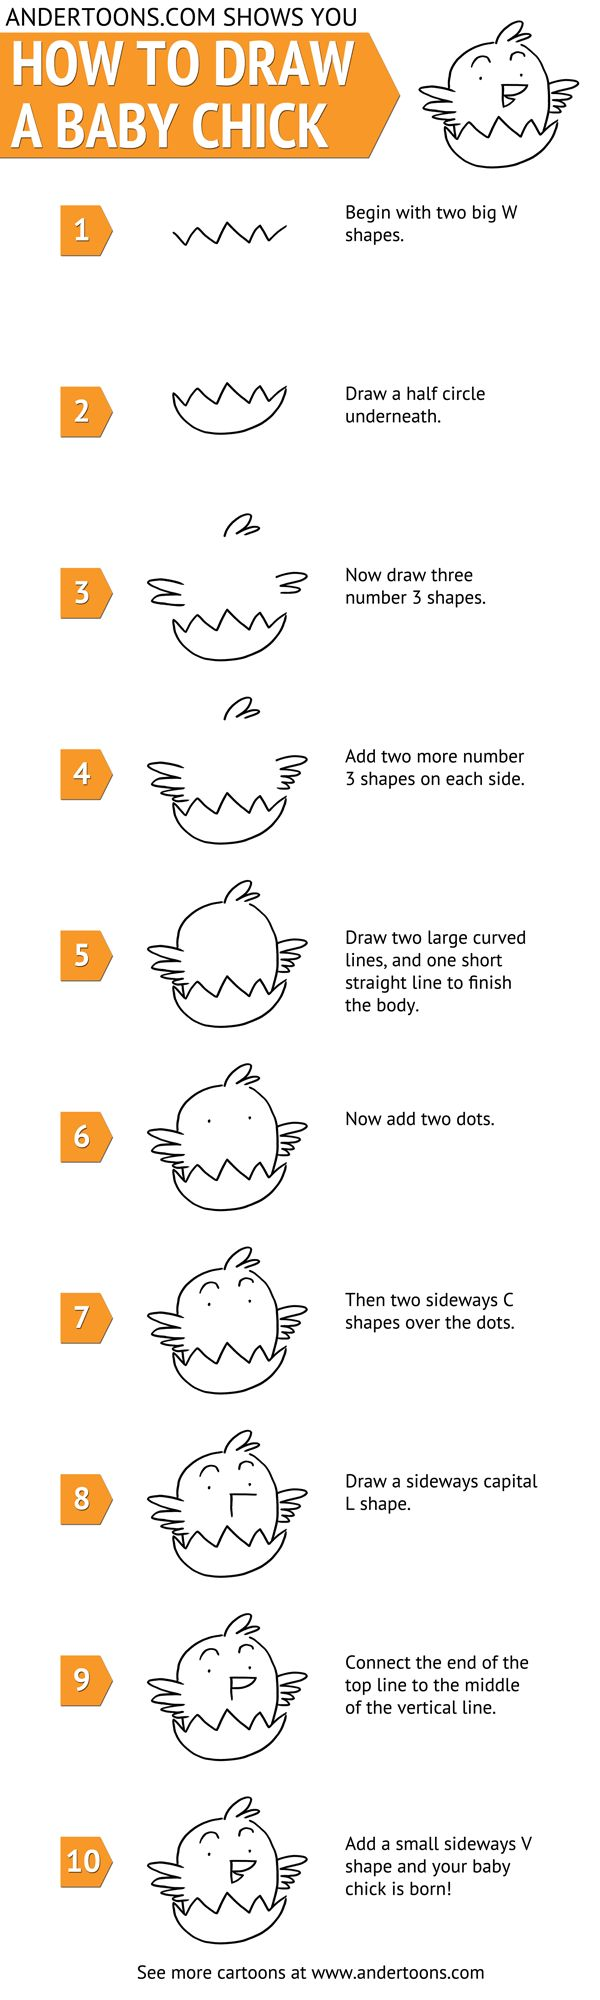 How to draw a cartoon baby chick. Students could use this as an oral language activity with a partner. Give the instructions of how to draw the animal, without identifying it. Can the other student guess the animal from the instructions given.